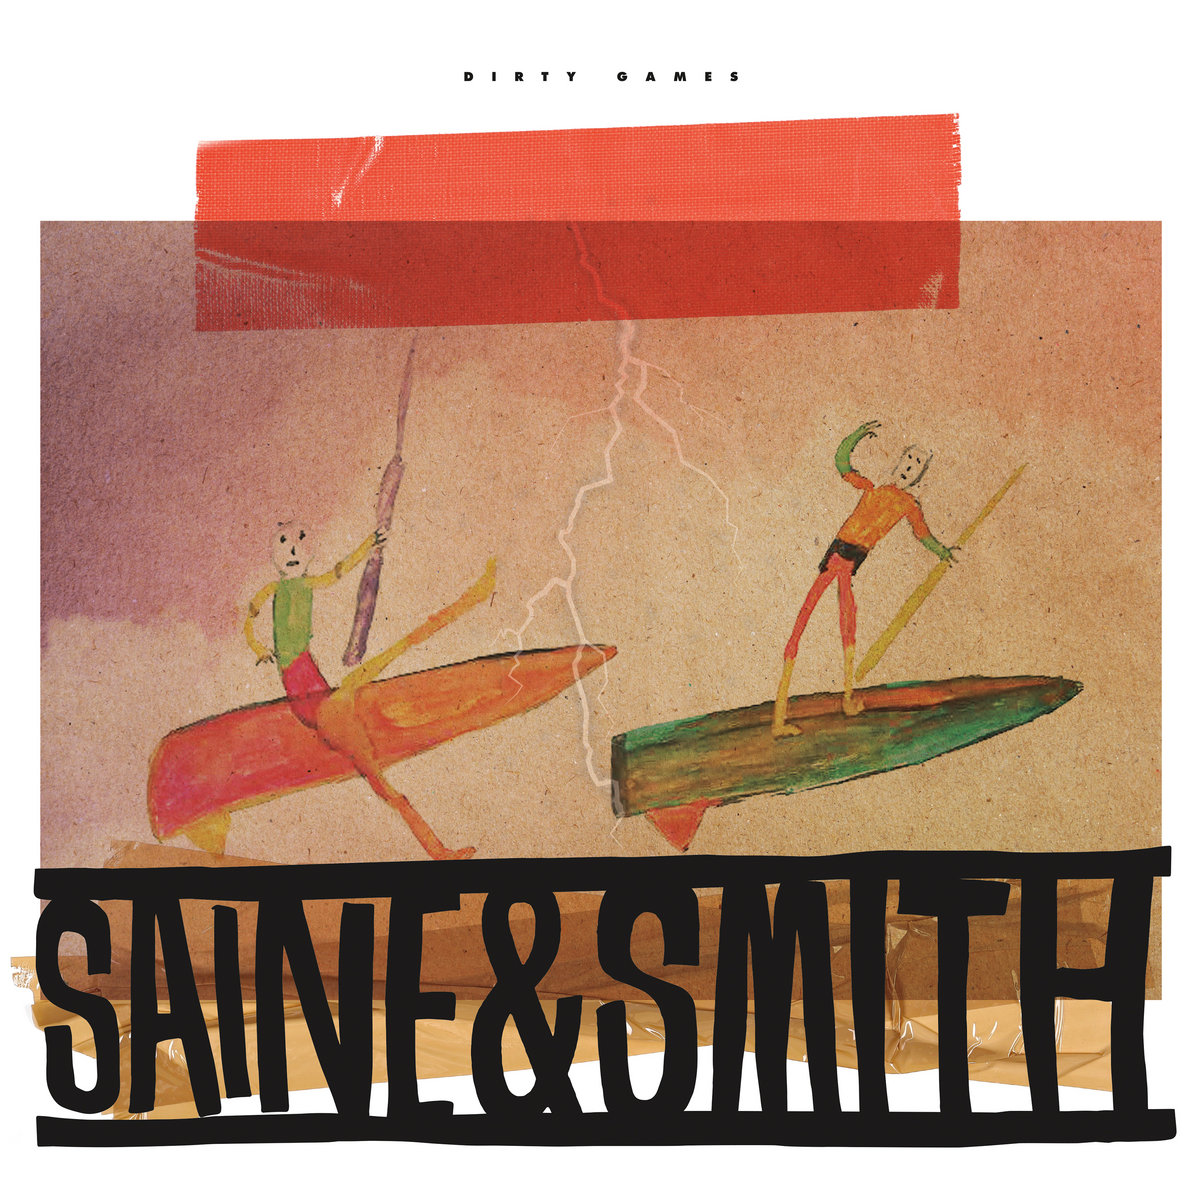 2MR-035 – Saine & Smith – Dirty Games EP